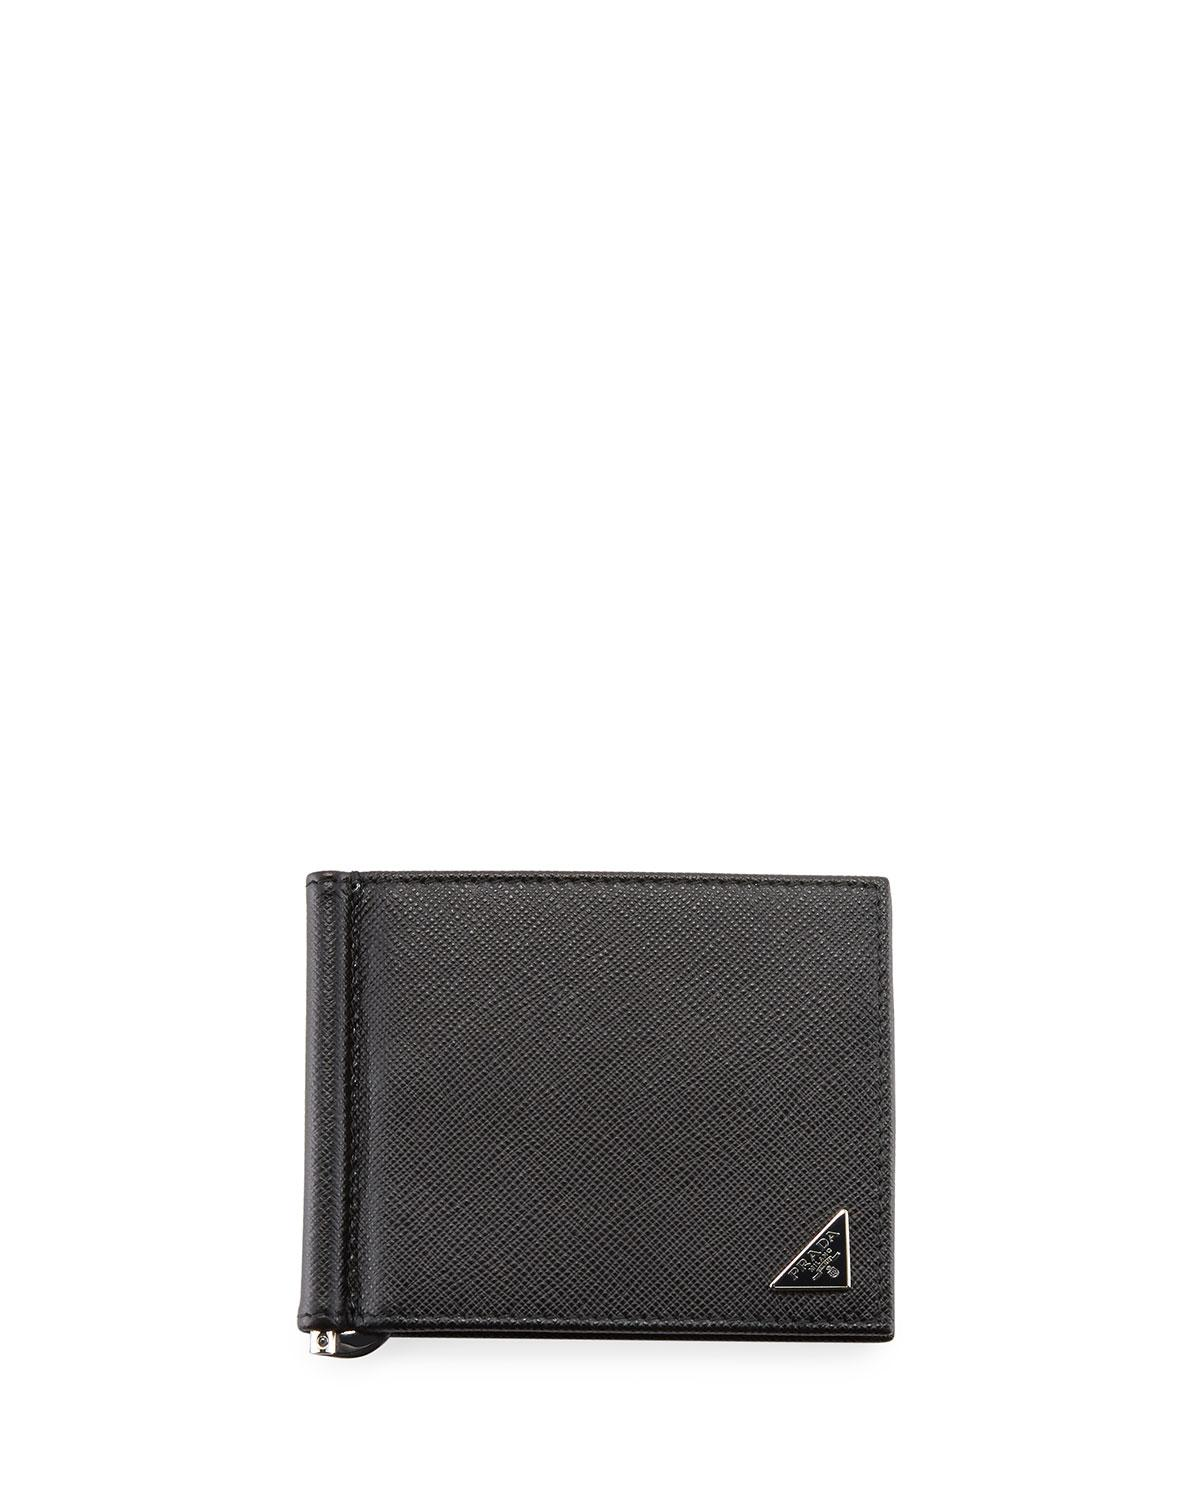 18c3bb20b270 Prada Saffiano Triangolo Wallet With Money Clip in Black for Men - Lyst